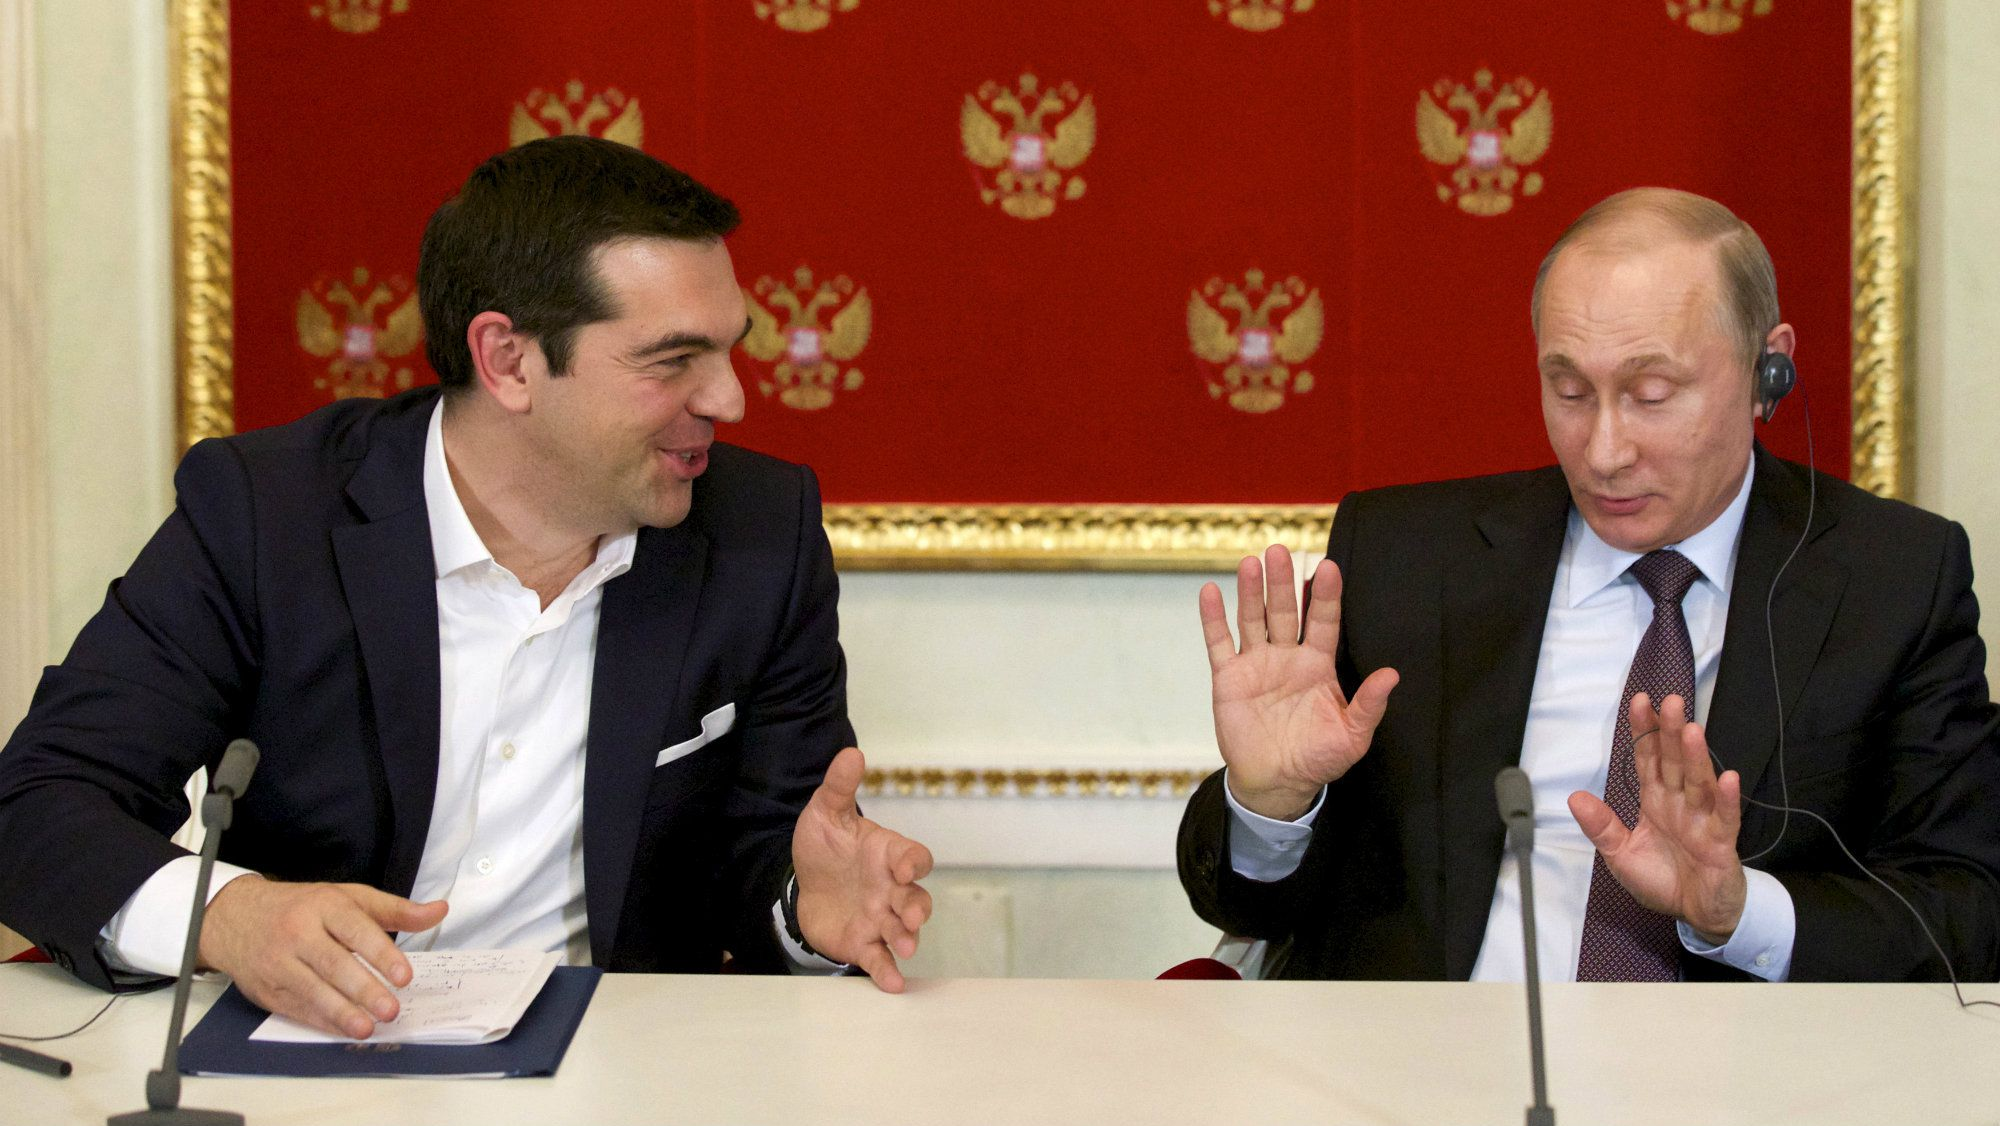 Russian President Vladimir Putin (R) and Greek Prime Minister Alexis Tsipras attend a signing ceremony at the Kremlin in Moscow, April 8, 2015.